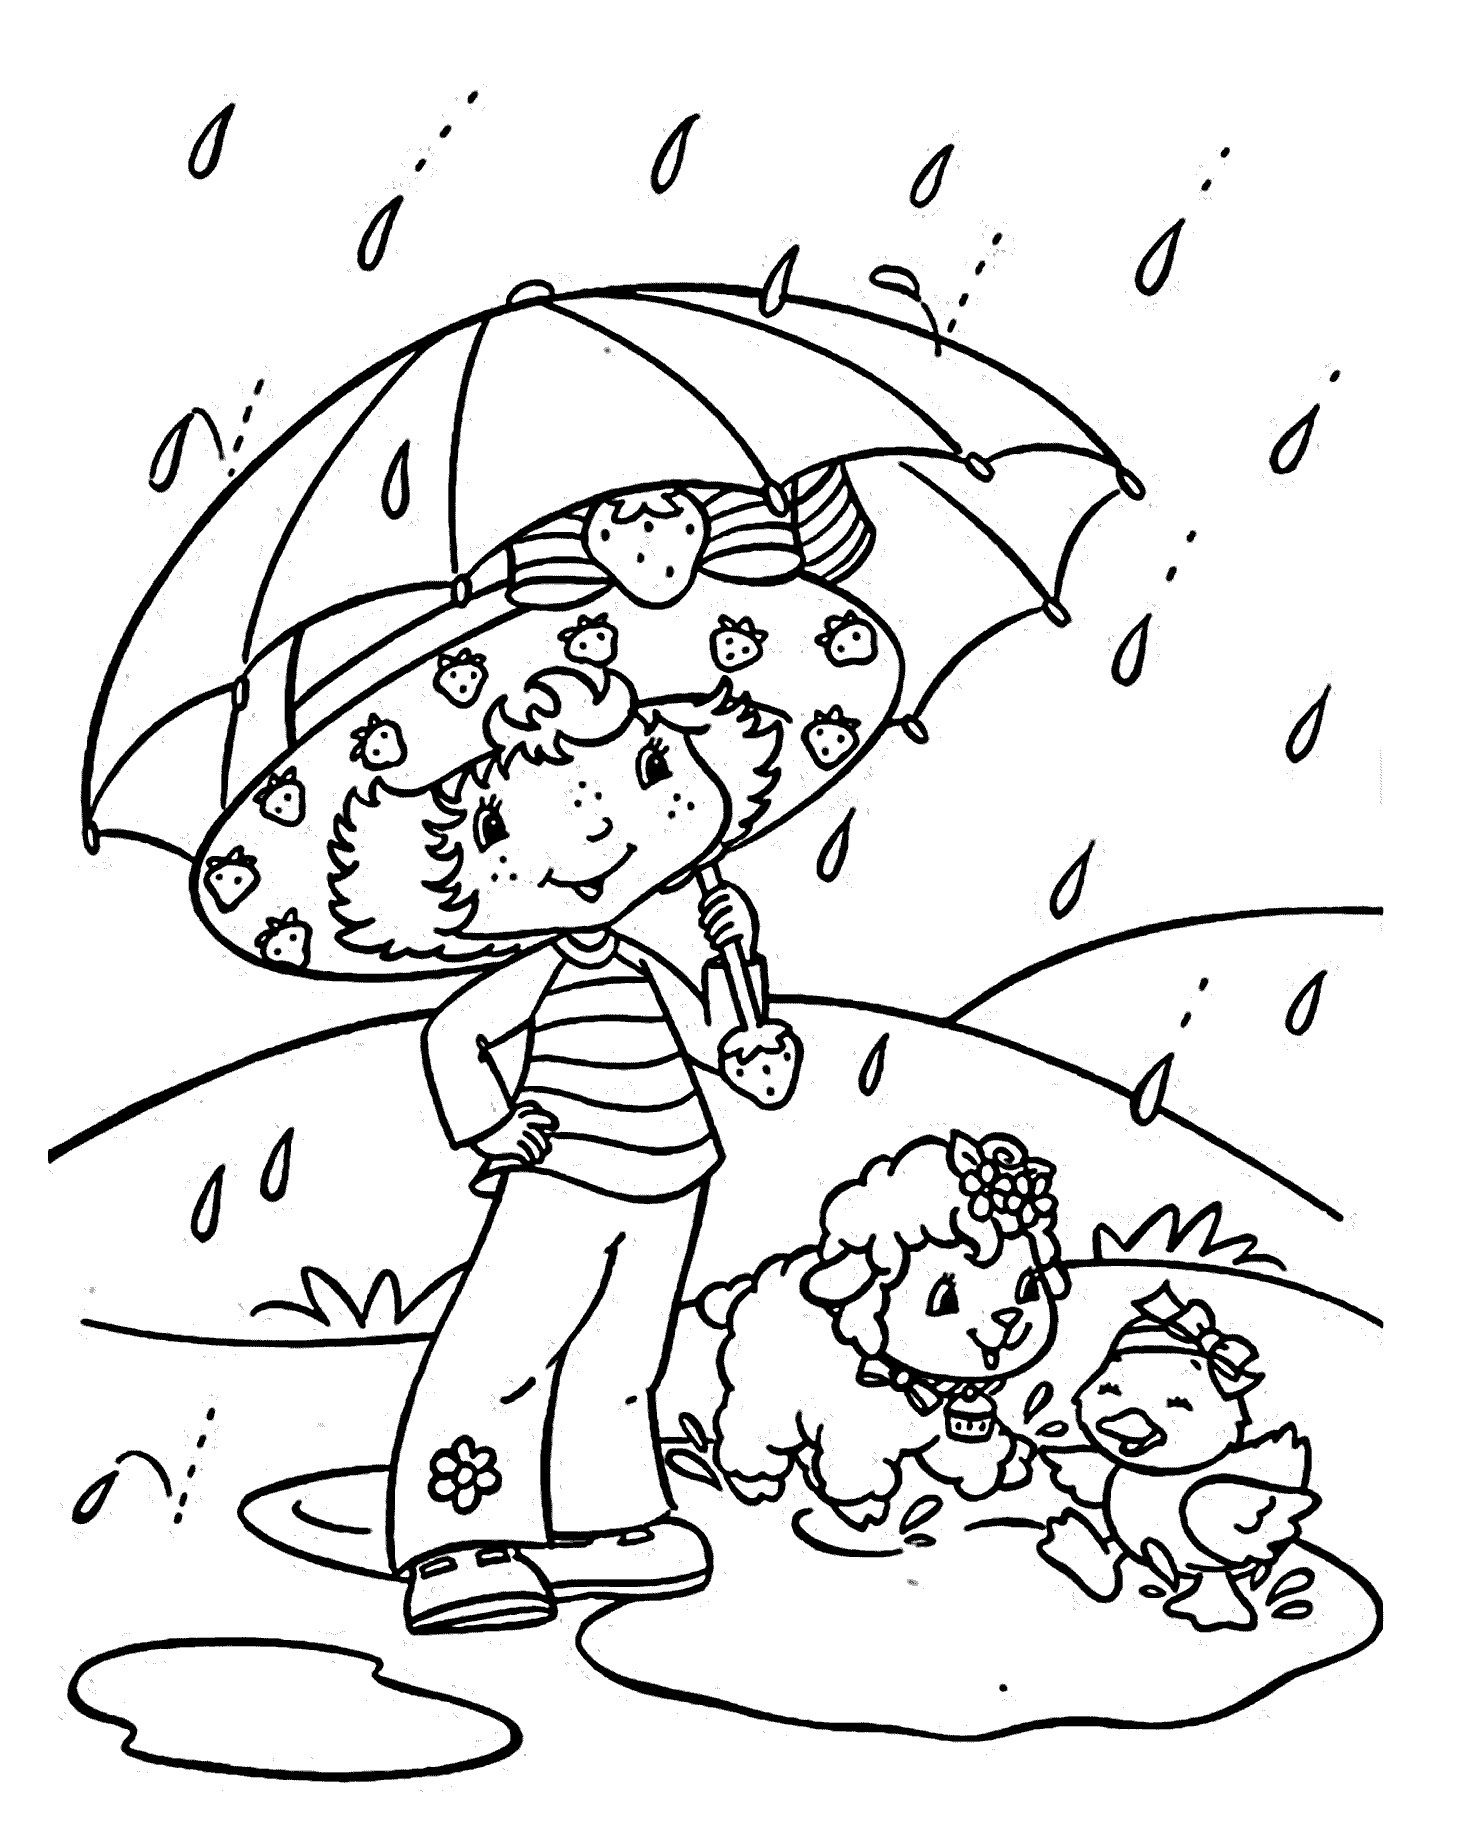 25 Wonderful Picture Of Rainy Day Coloring Pages Davemelillo Com Strawberry Shortcake Coloring Pages Coloring Books Cartoon Coloring Pages